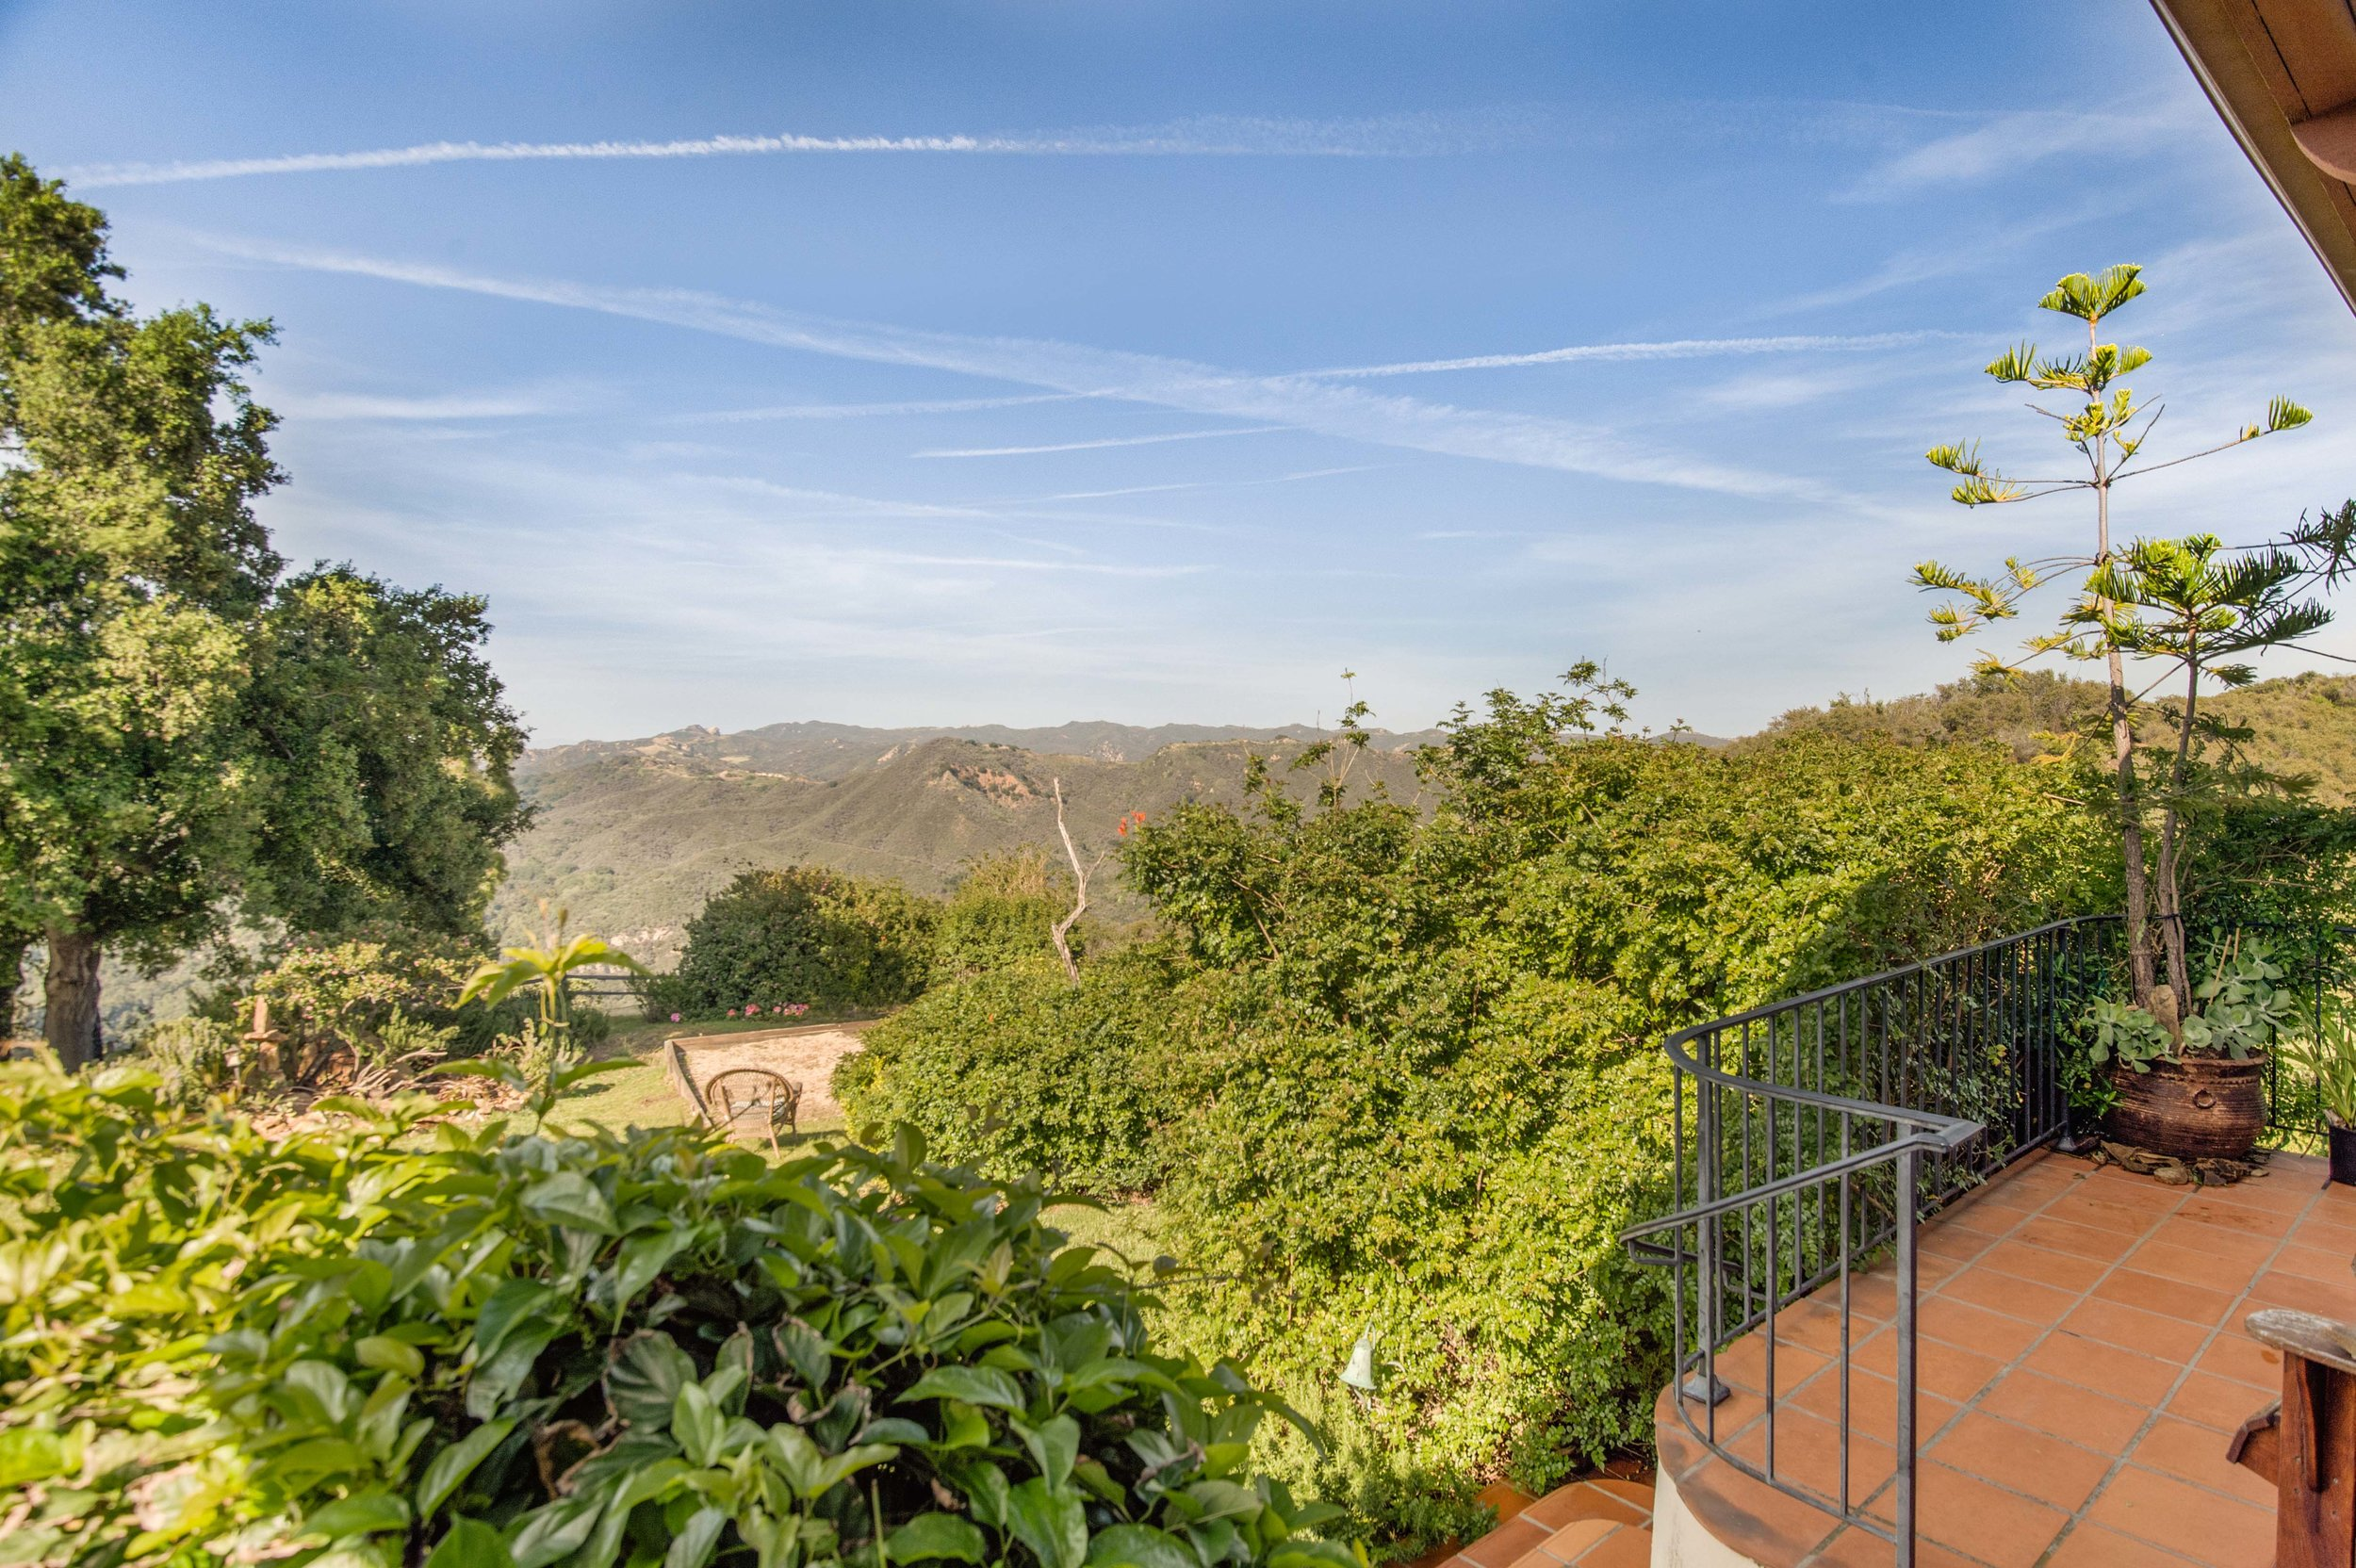 009 Master Balcony 20333 Reigate Road Topanga For Sale Lease The Malibu Life Team Luxury Real Estate.jpg